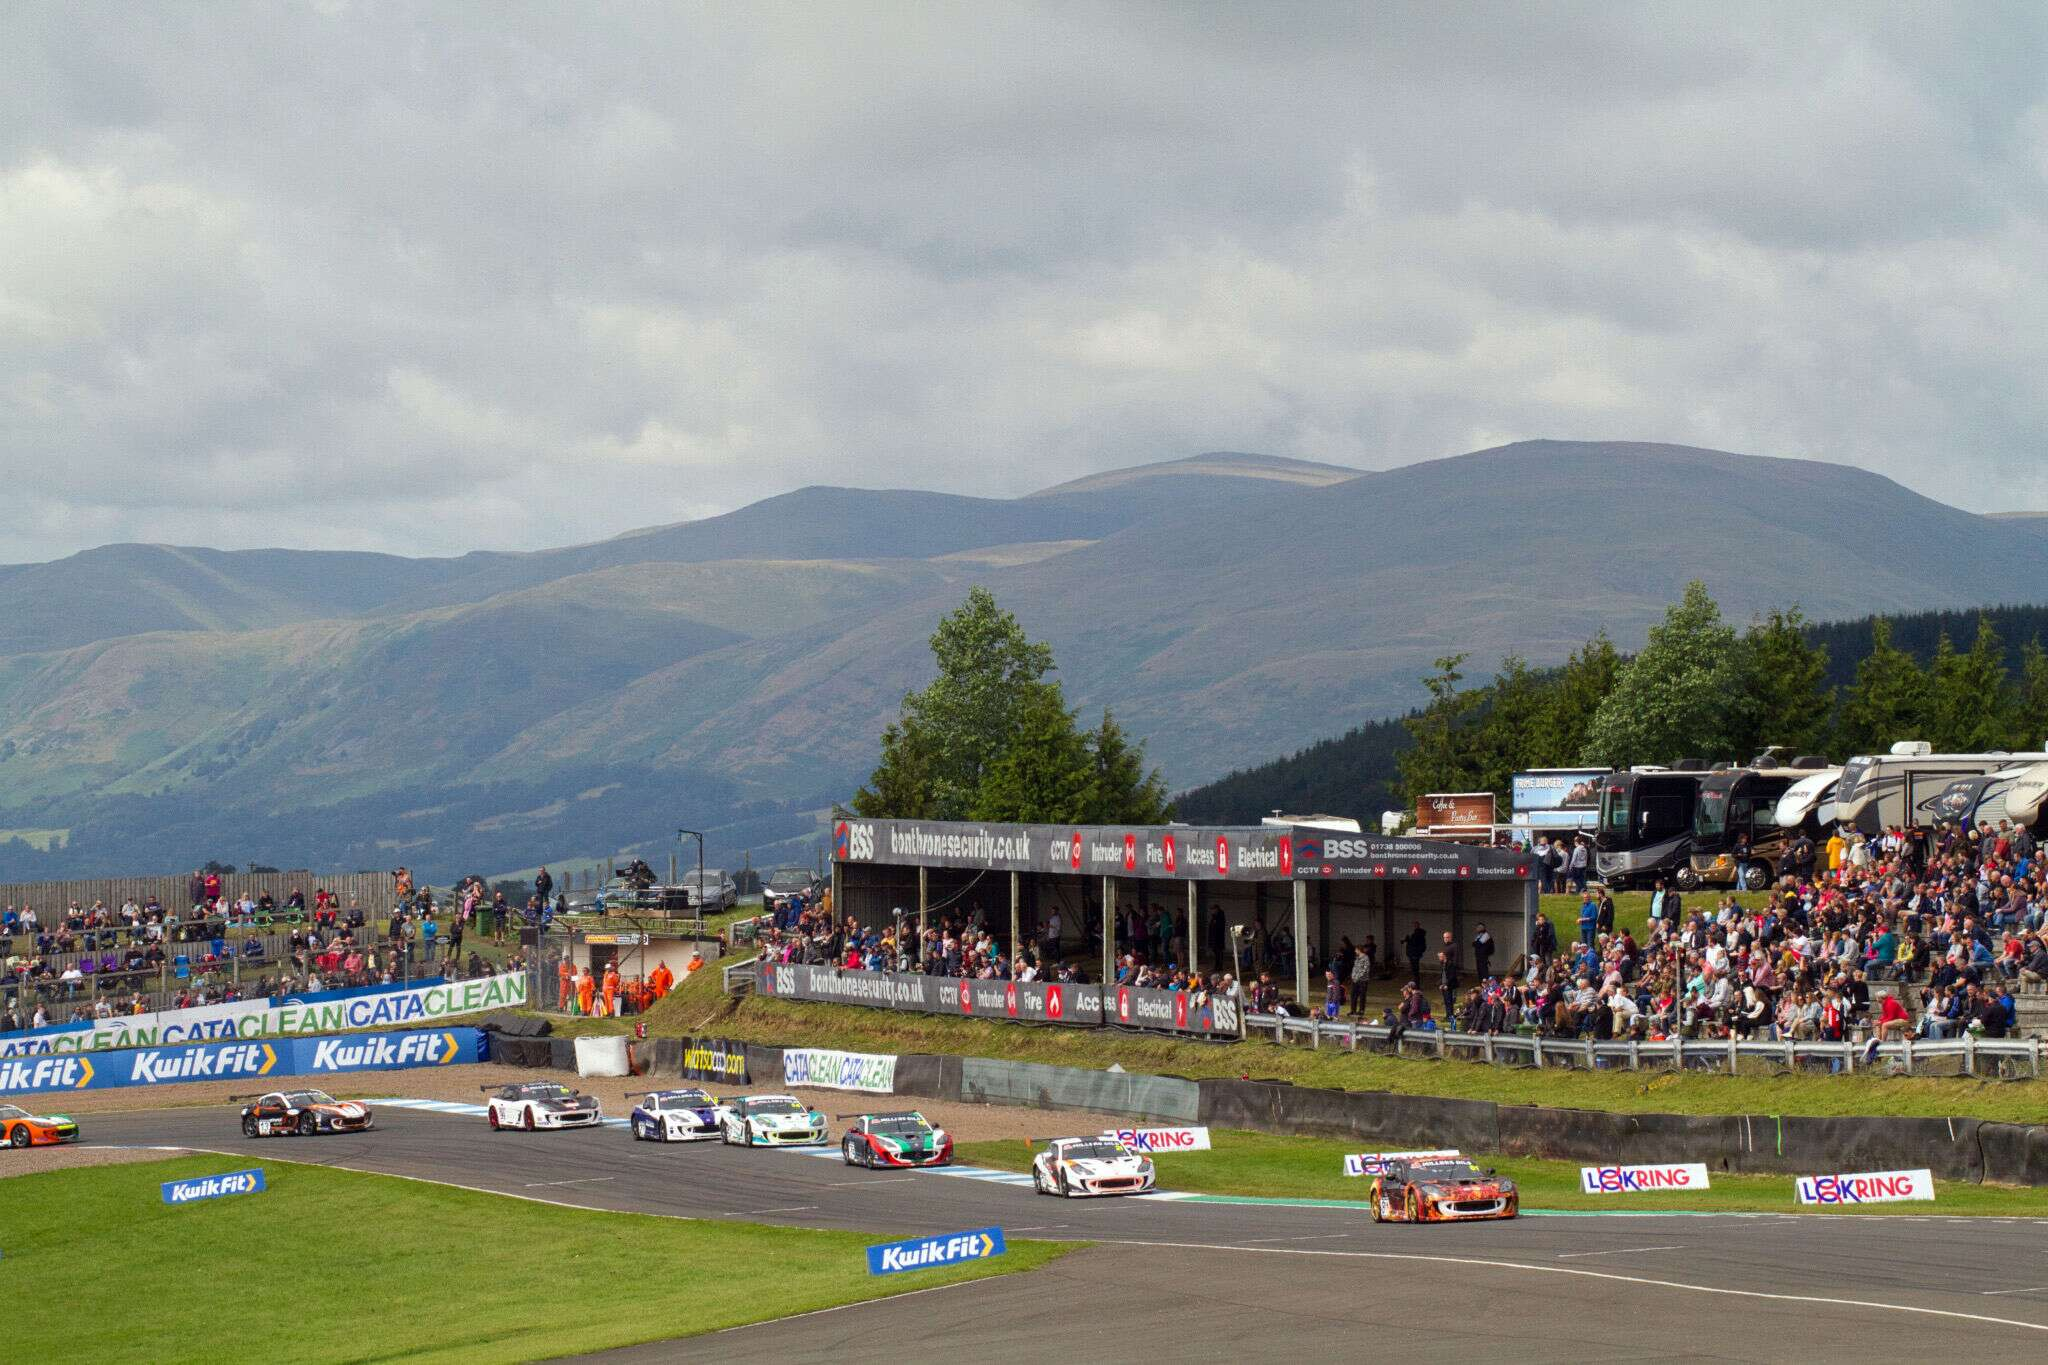 Scenic view of Knockhill Racing Circuit